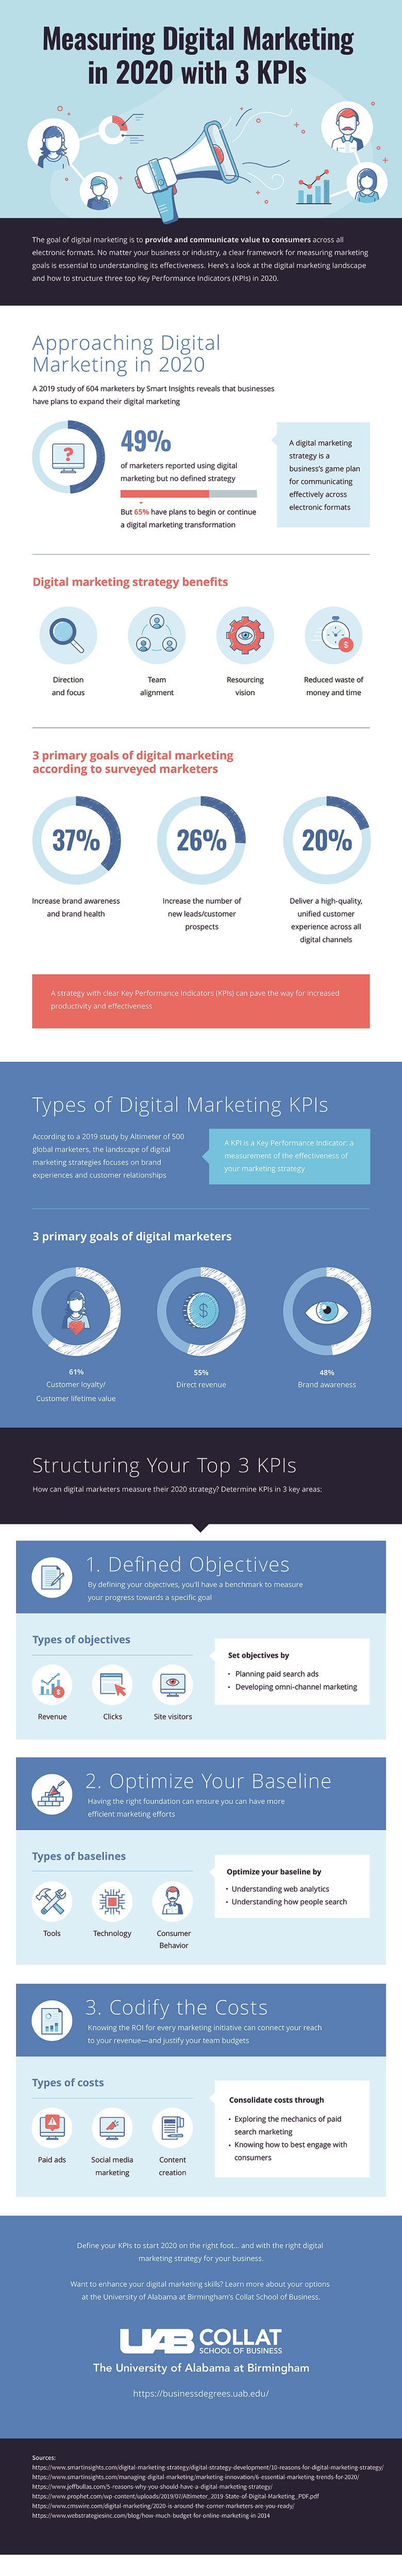 An infographic about digital marketing KPIs in 2020 by UAB Collat School of Business.